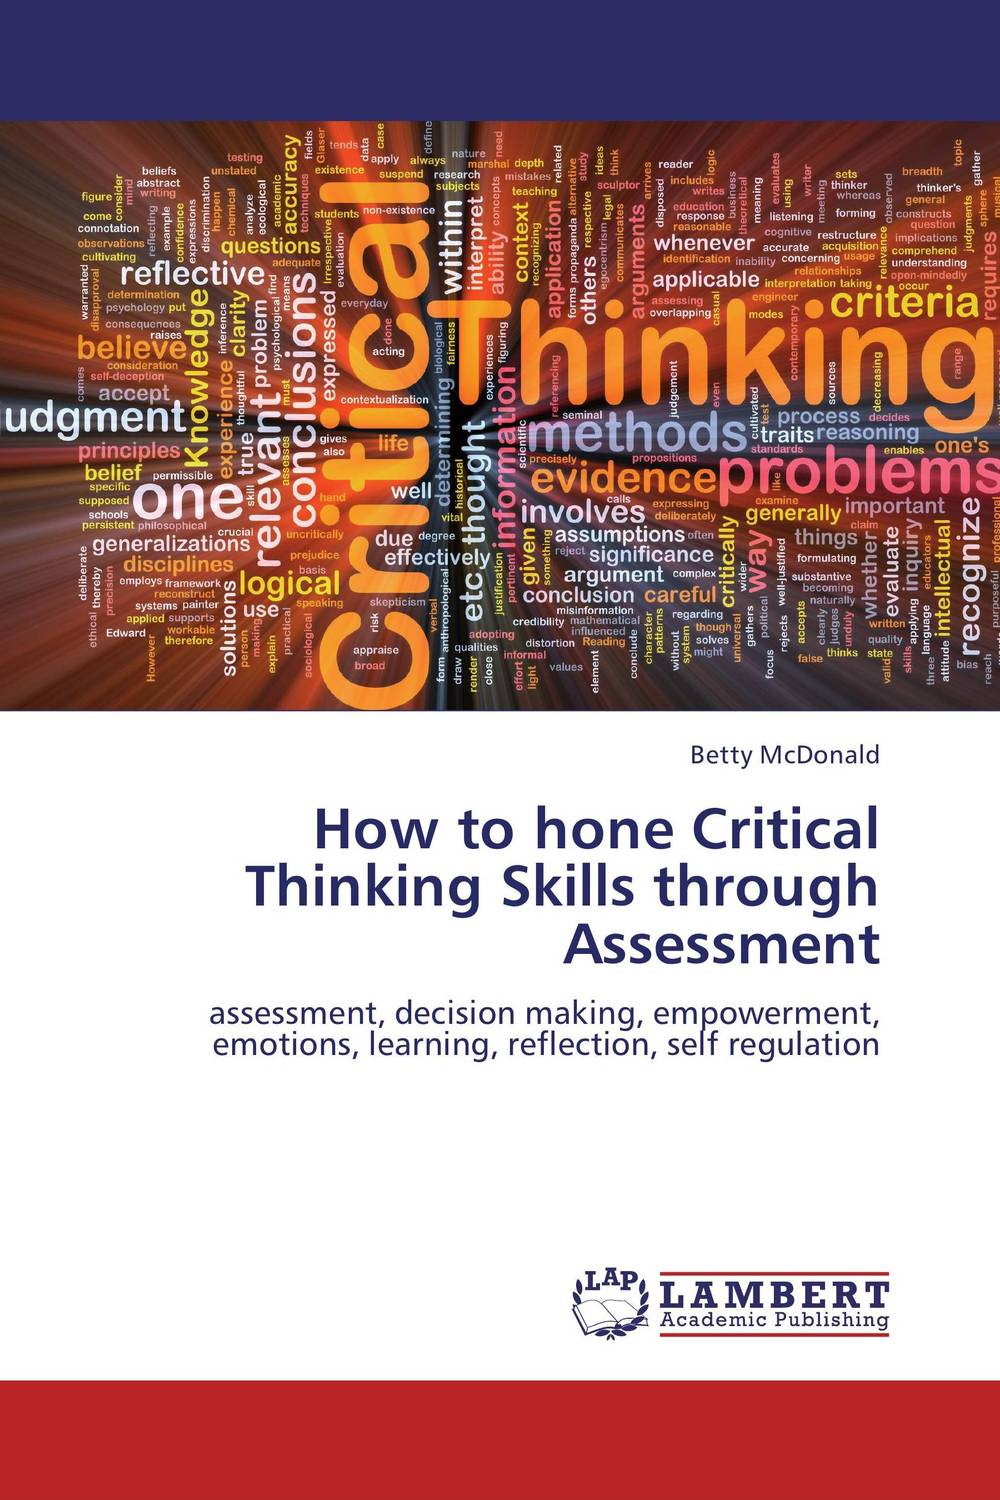 How to hone Critical Thinking Skills through Assessment